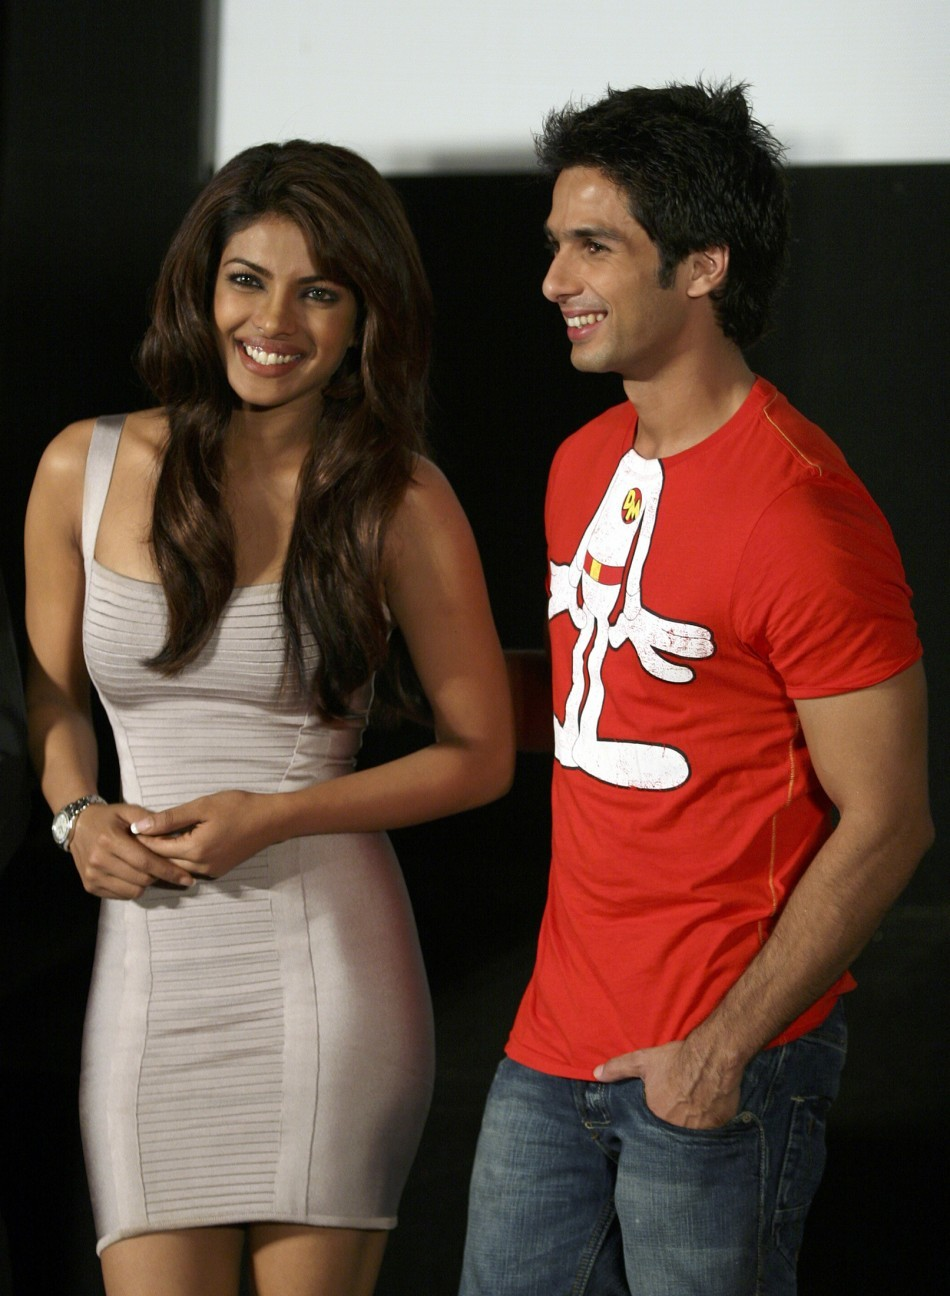 Priyanka Chopra and Shahid Kapoor